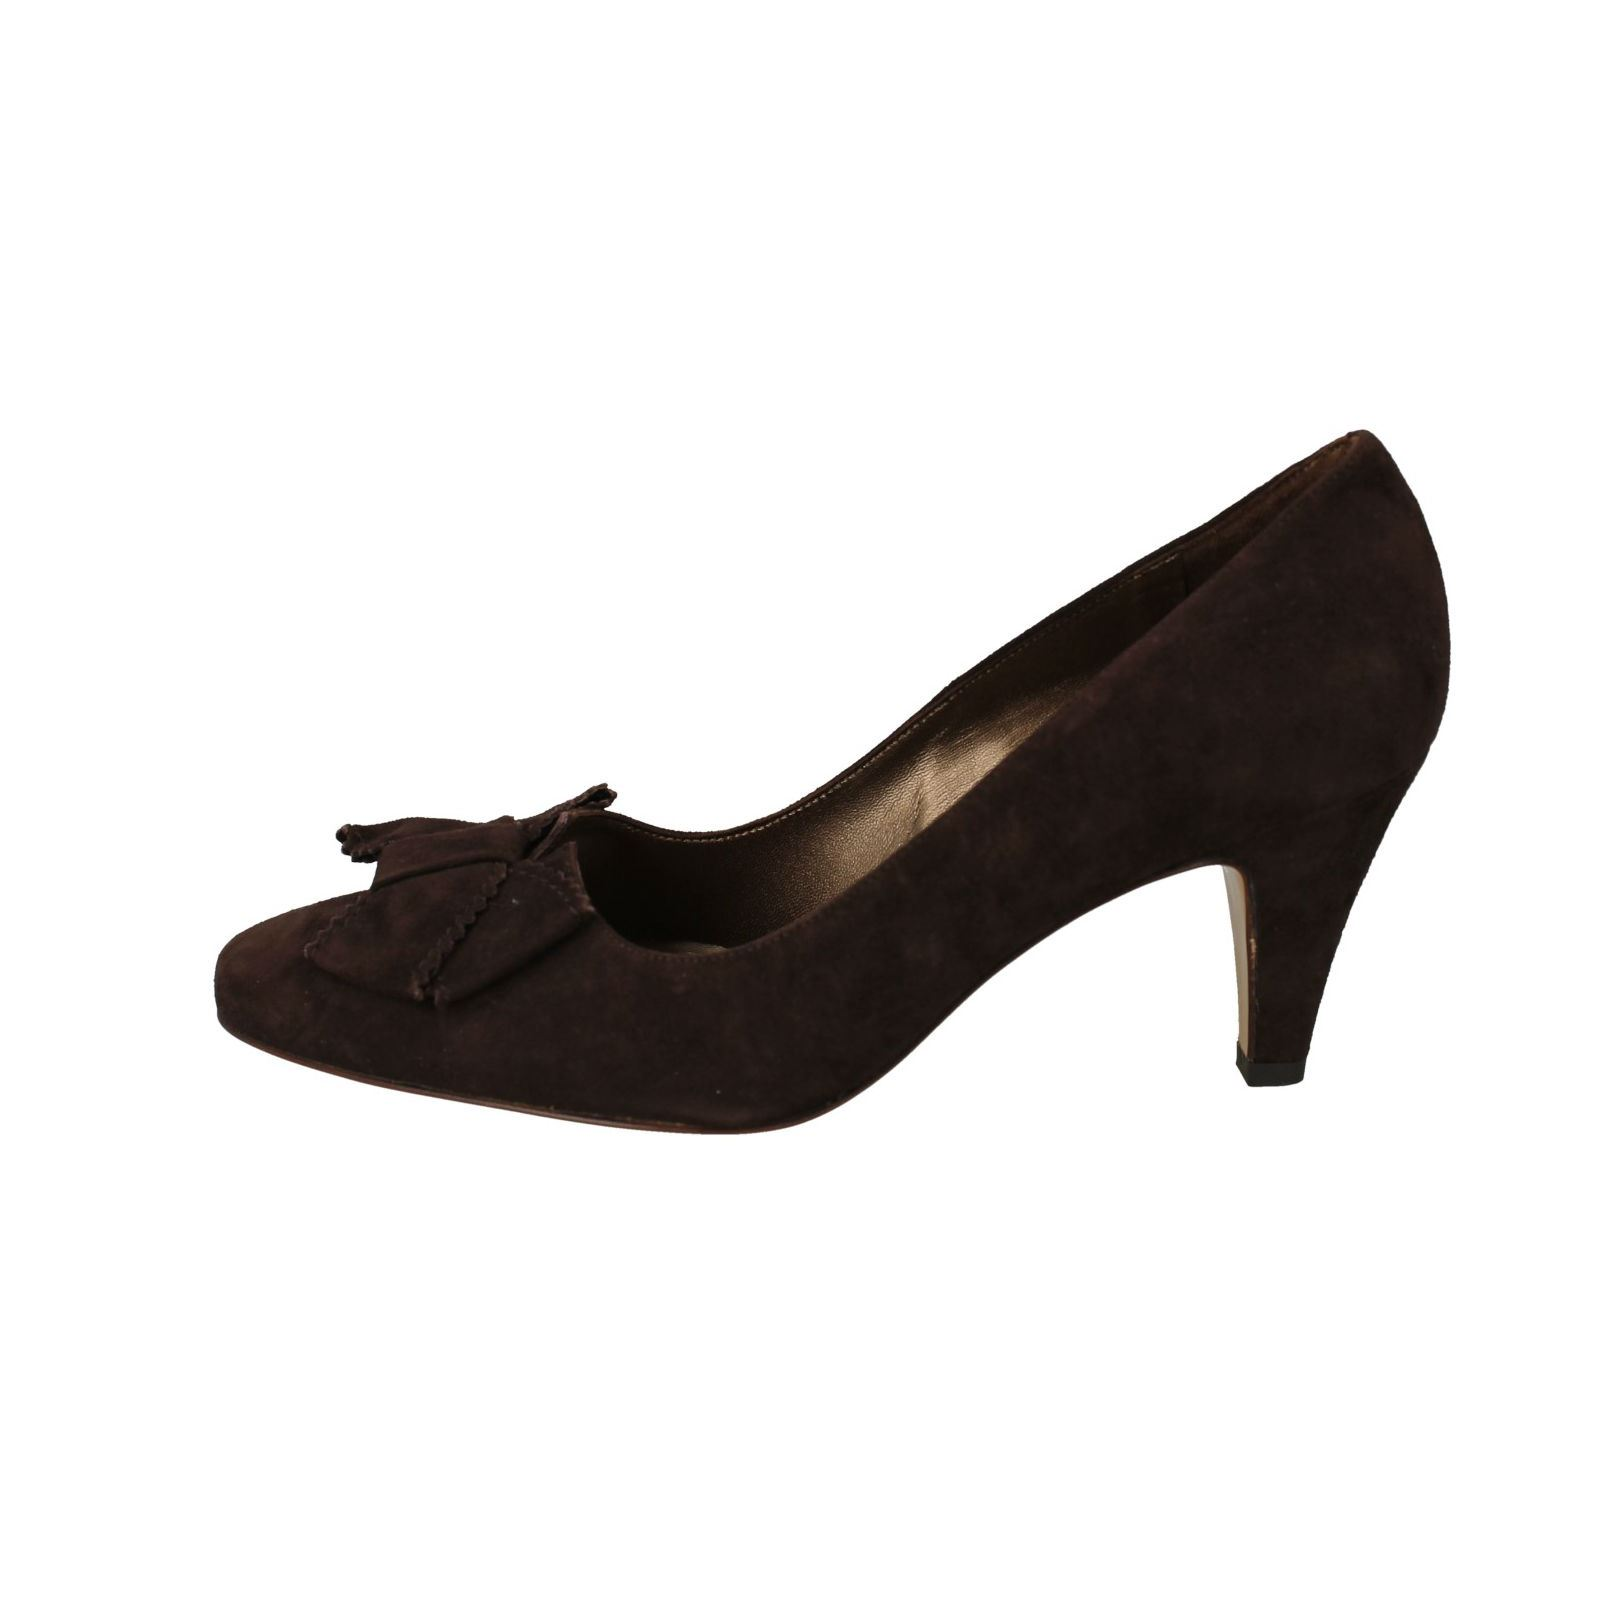 Ladis Peter Court Kaiser Smart Court Peter Shoes Label - Paola 698ec4